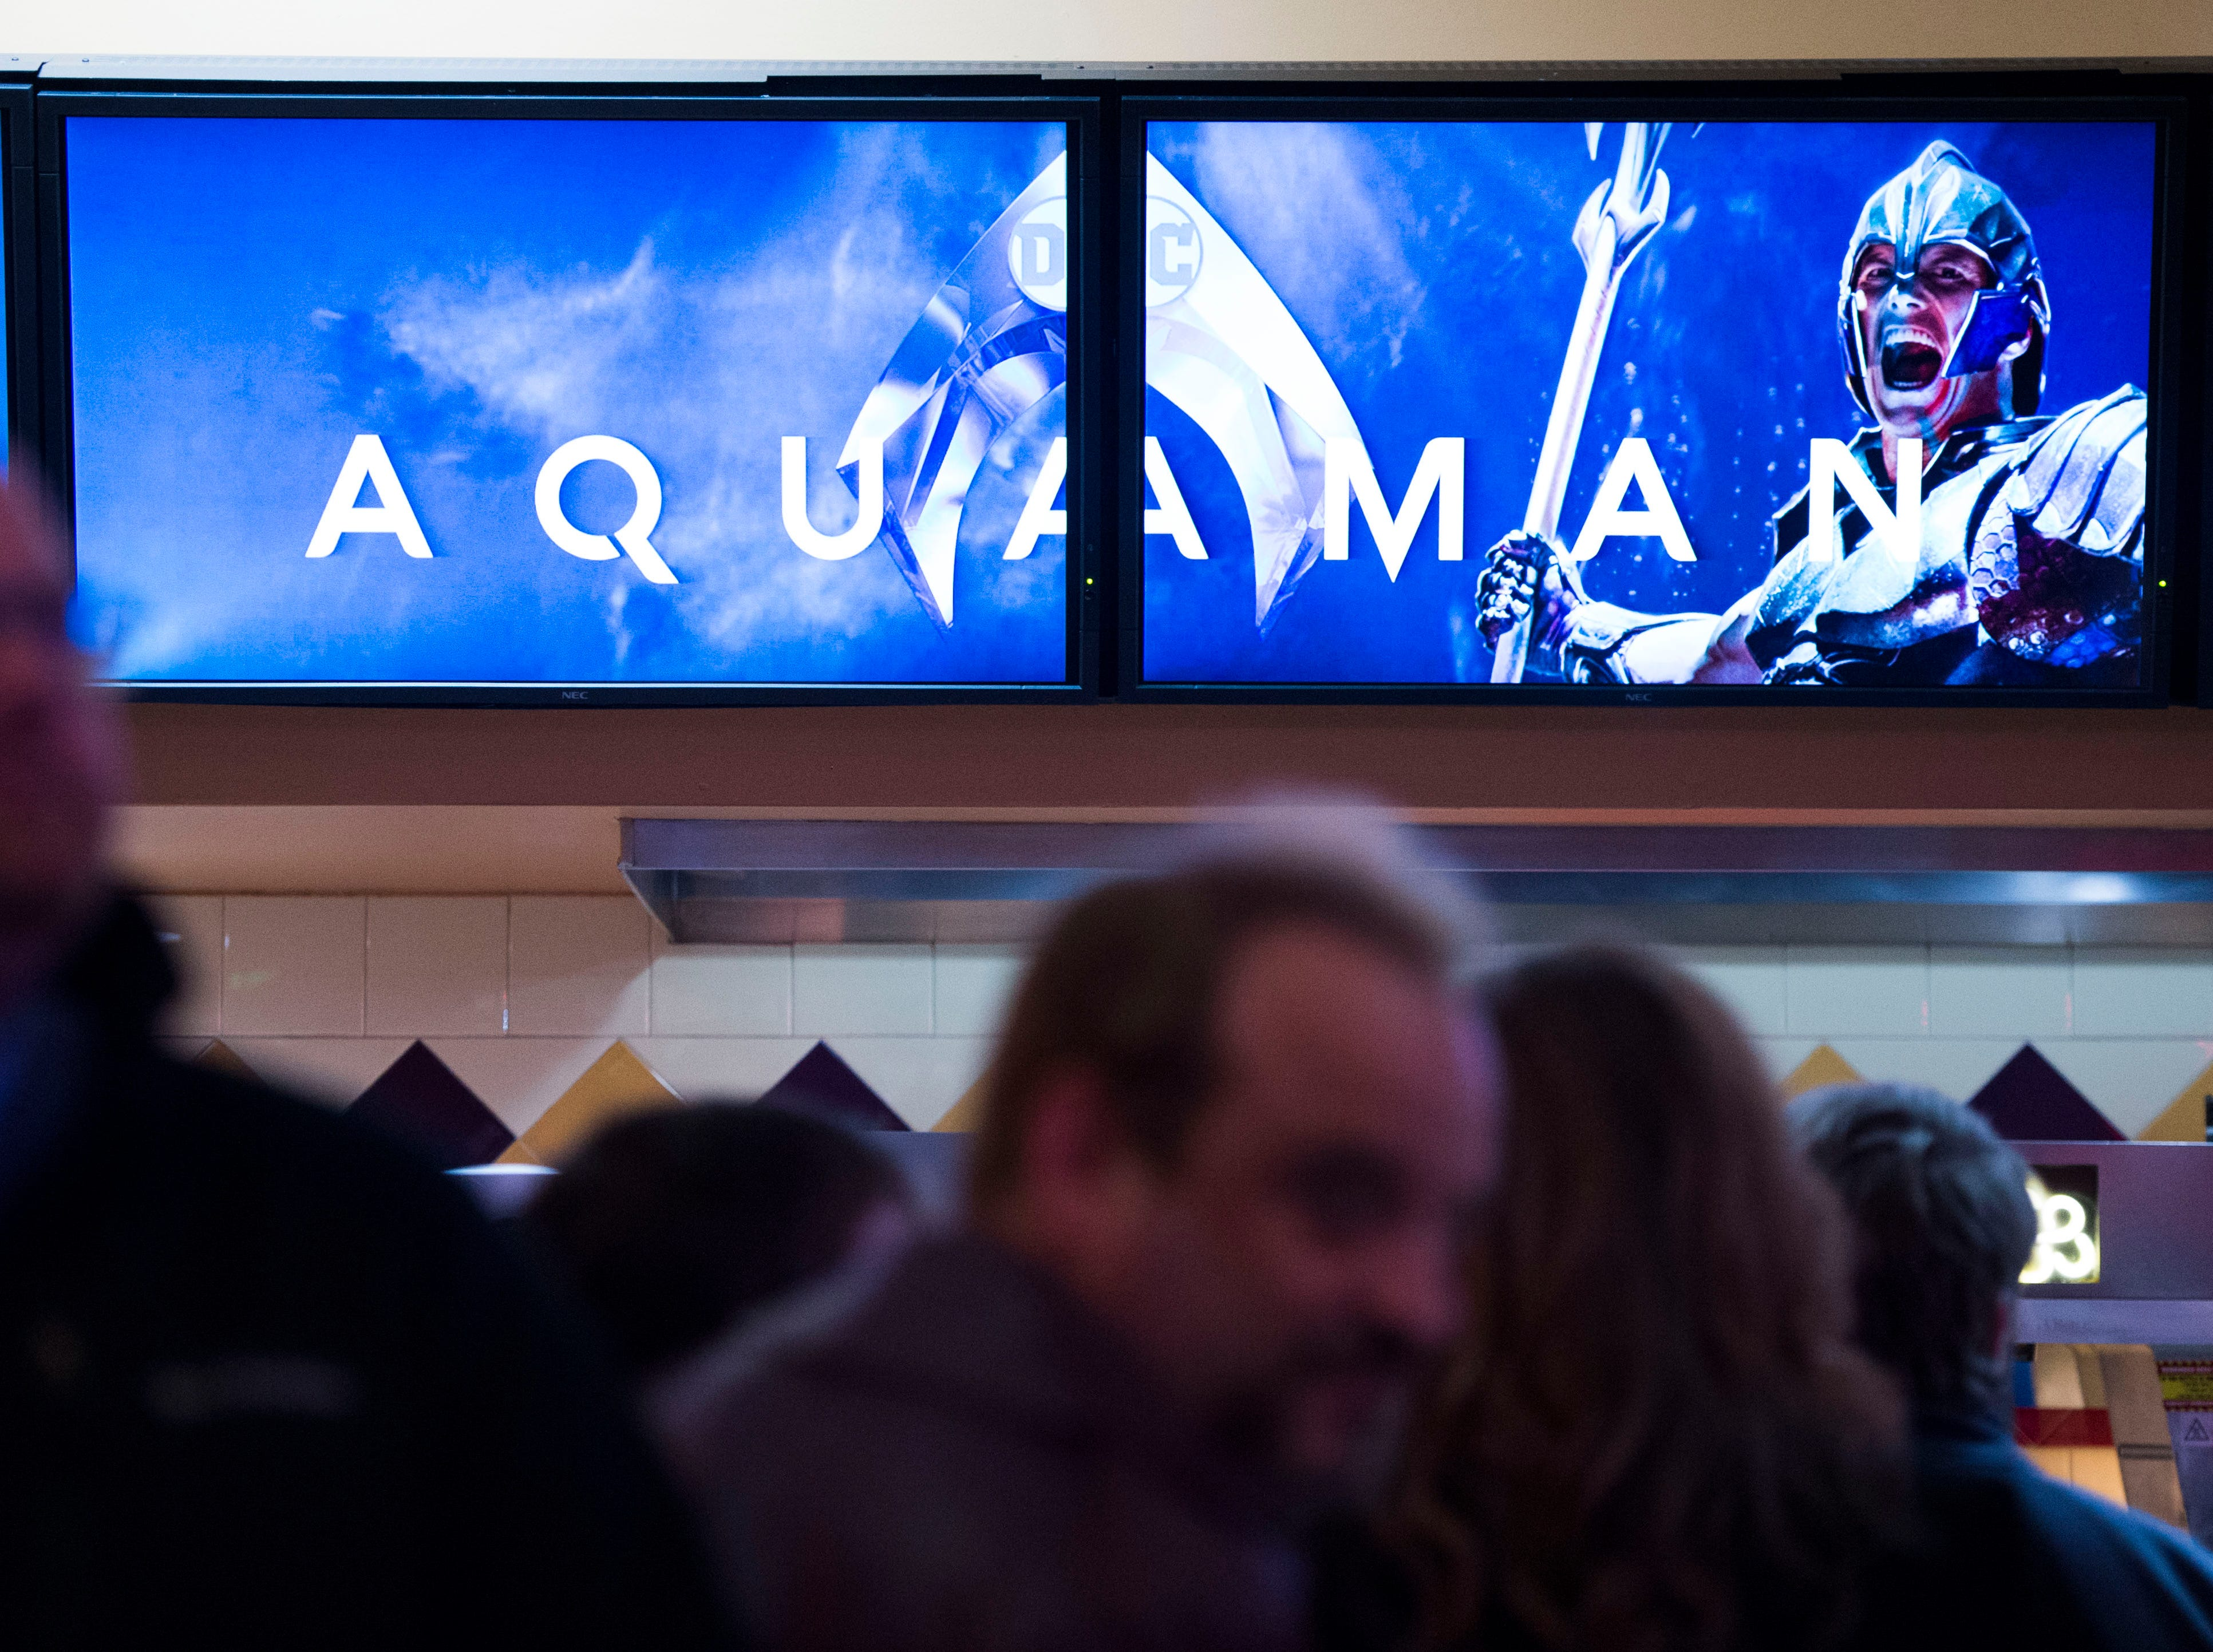 """Attendees wait for """"Aquaman"""" star Patrick Wilson to arrive at Regal's annual red carpet premiere for Variety at Regal Pinnacle Stadium 18, Thursday, Dec. 13, 2018."""